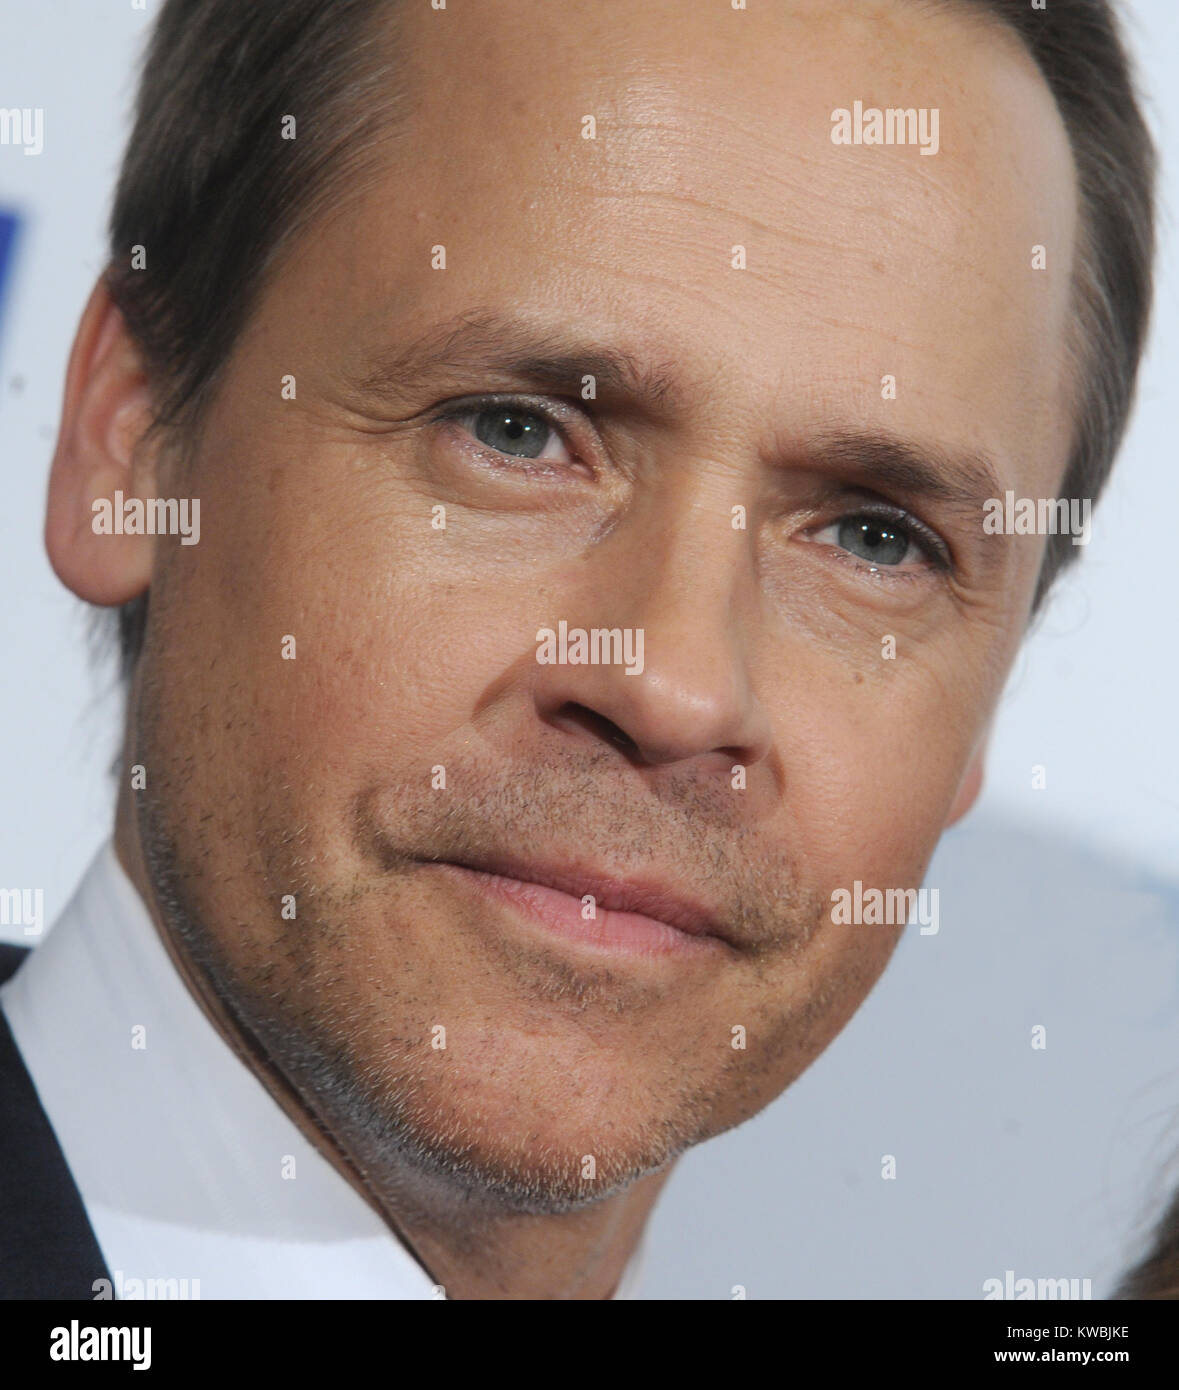 NEW YORK, NY - DECEMBER 16:  Chad Lowe attends the 2014 RFK Ripple Of Hope Gala at New York Hilton on December 16, - Stock Image